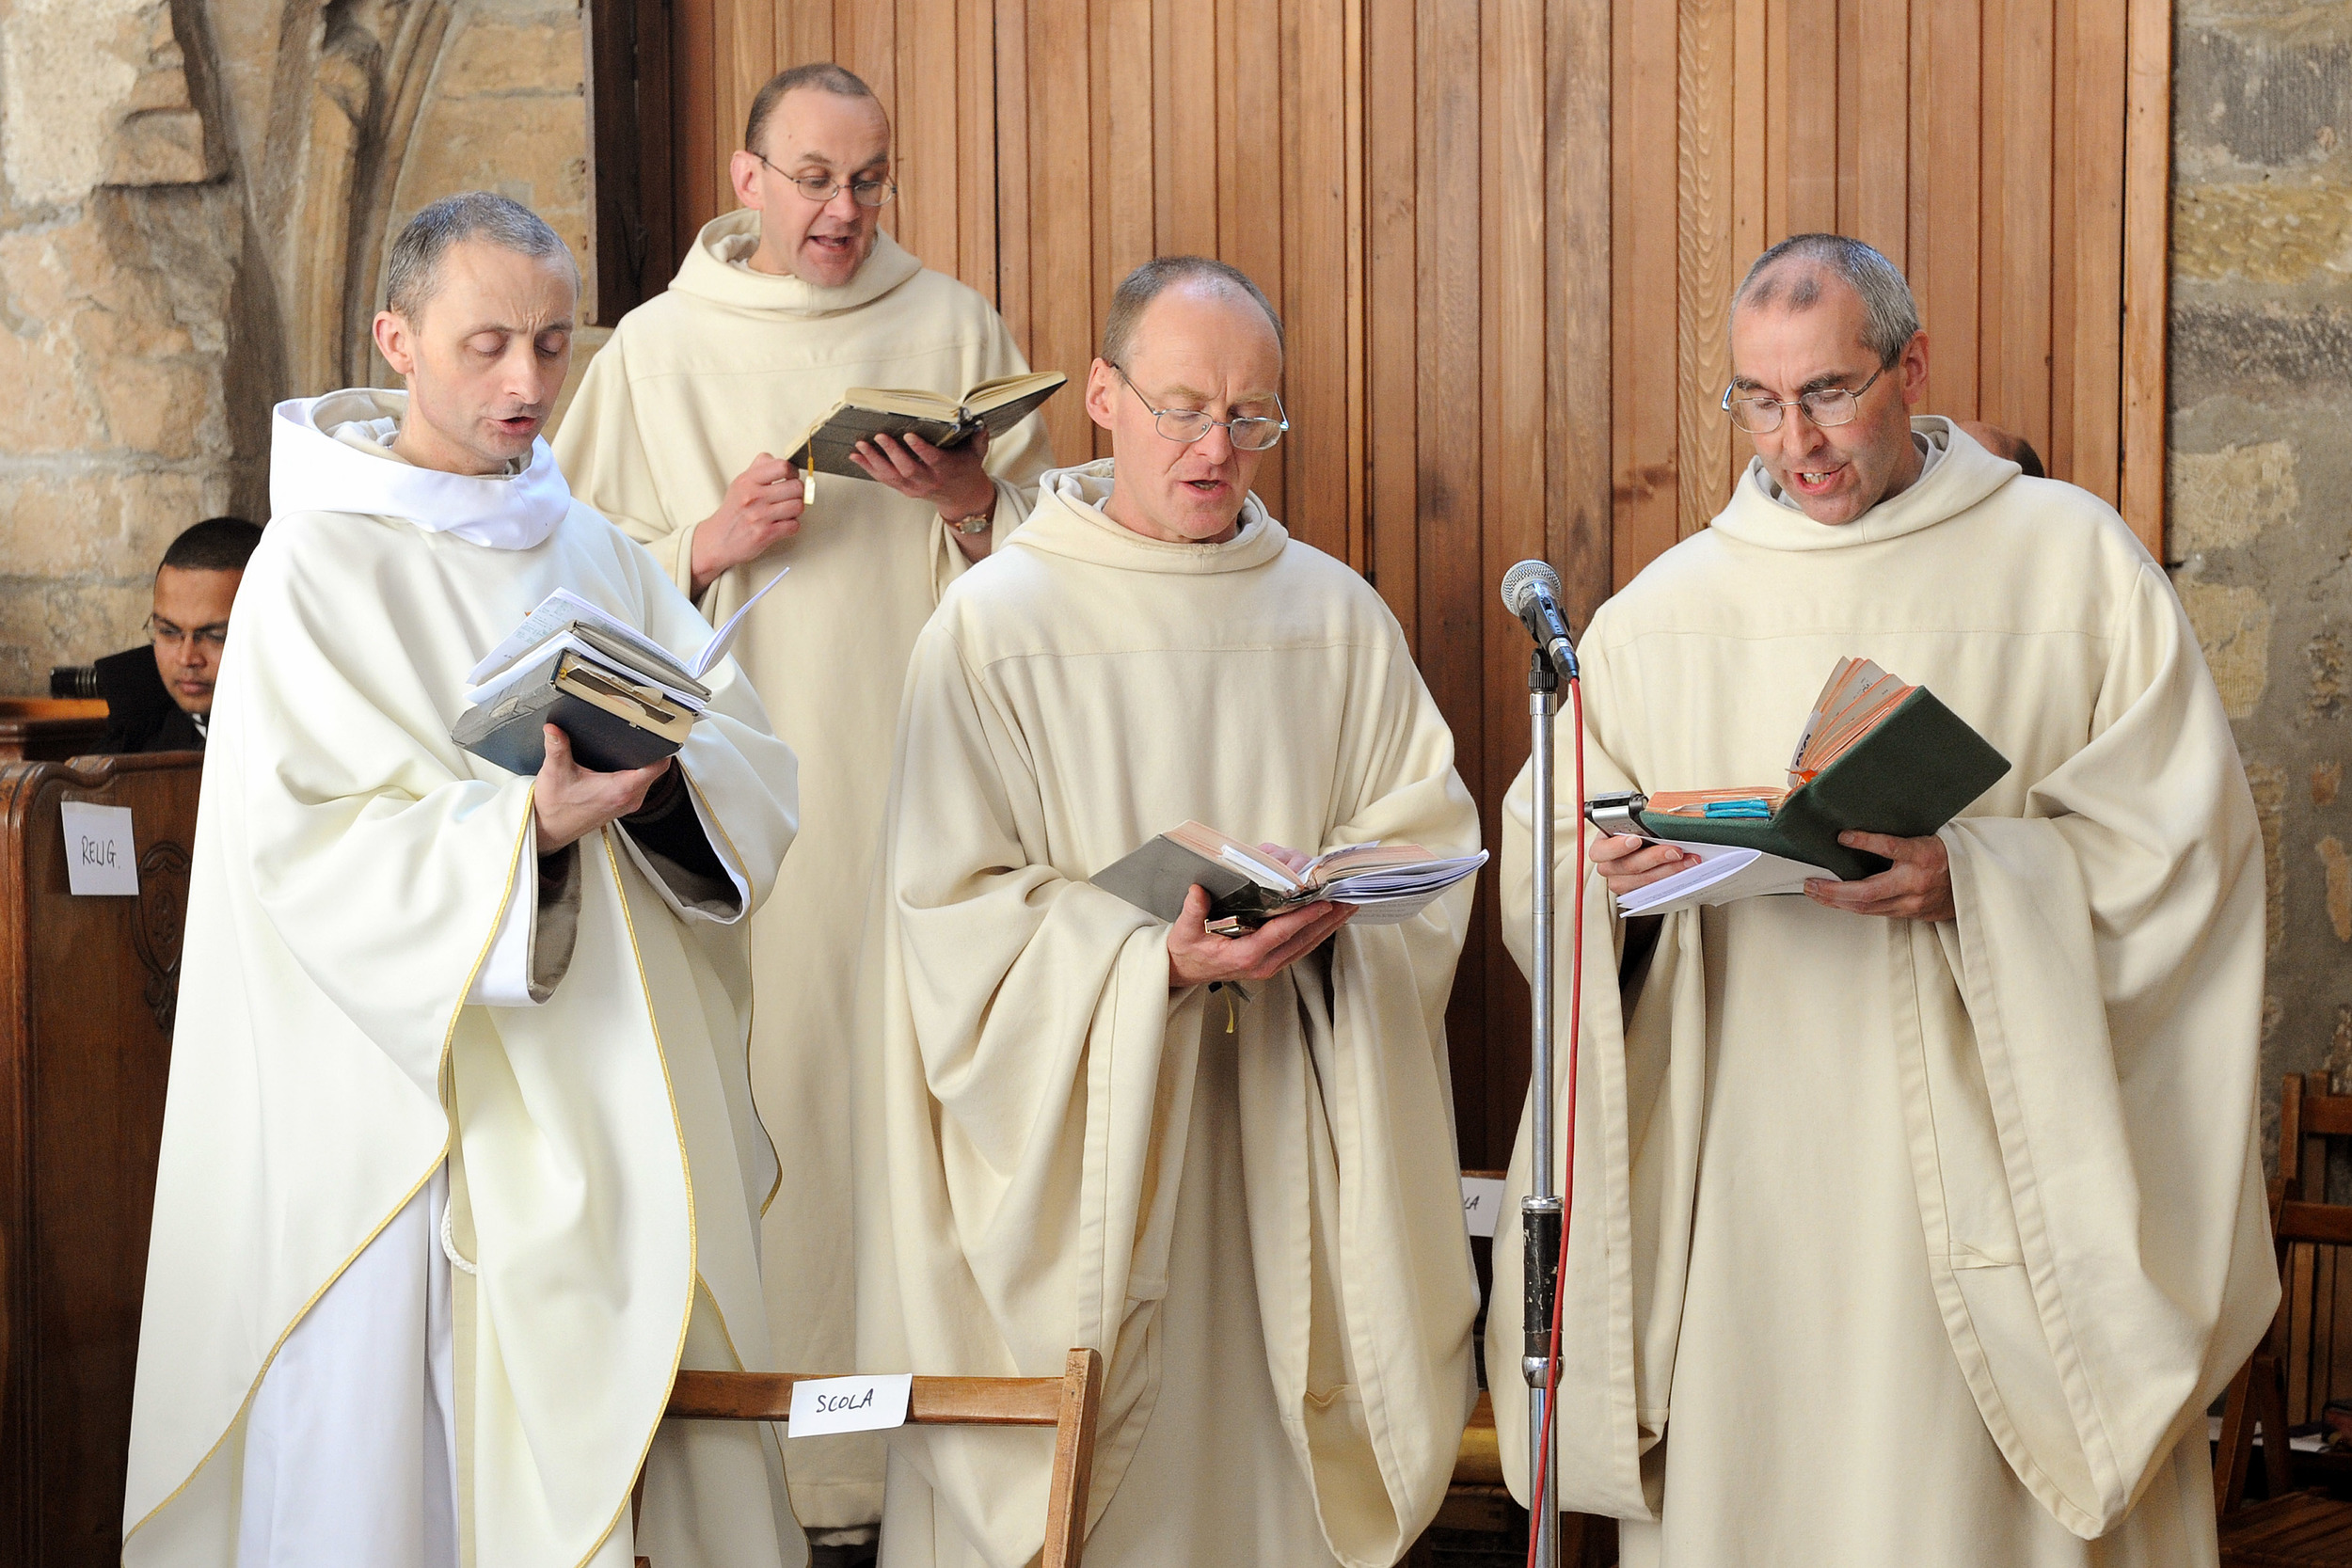 Monks at Pluscarden Abbey